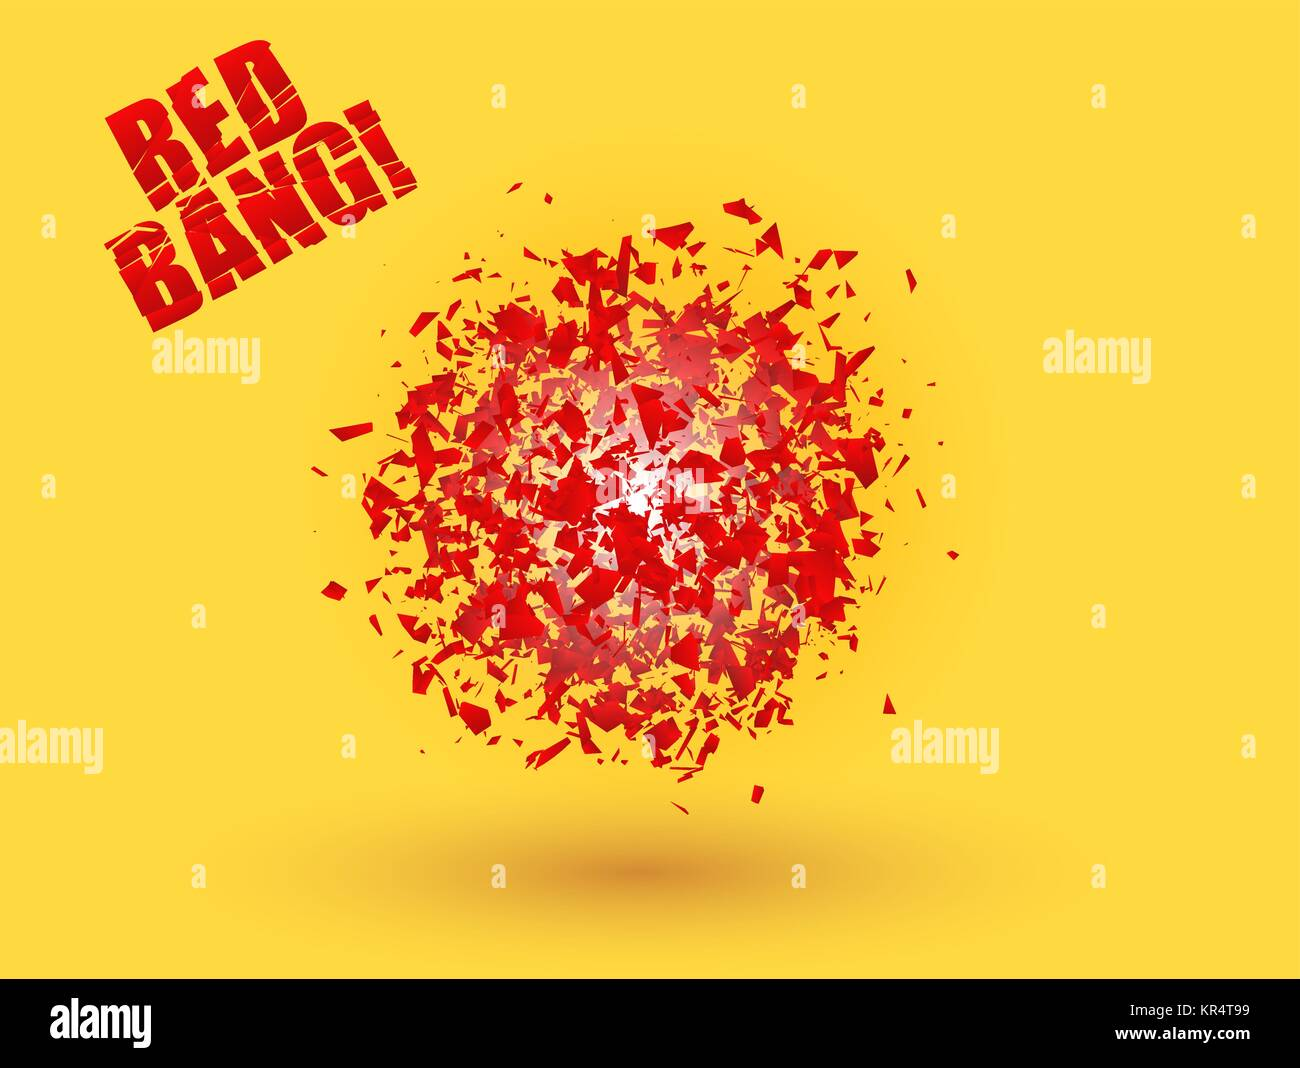 Abstract explosion cloud of red pieces on bright orange yellow background. Explosive destruction. Particles of star - Stock Vector